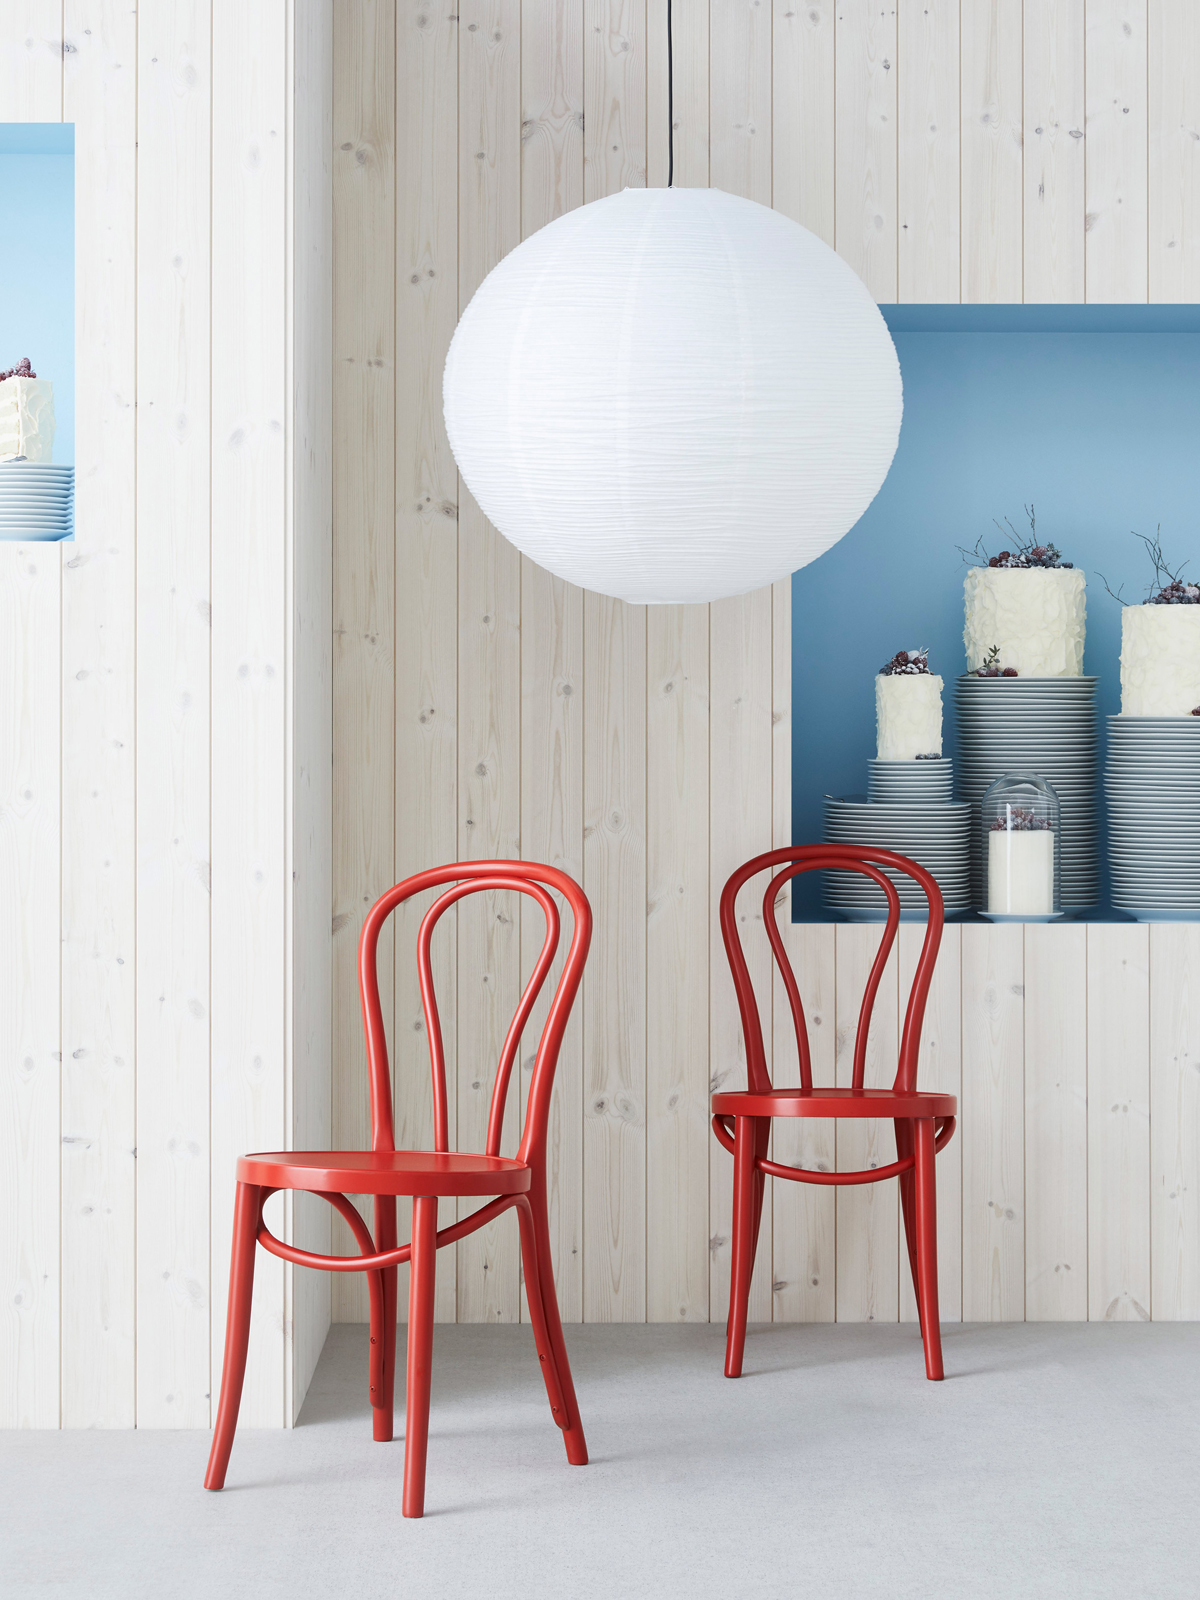 Ikea Sedie In Plastica.Ikea Celebrates 75th Anniversary With 3 Vintage Collections